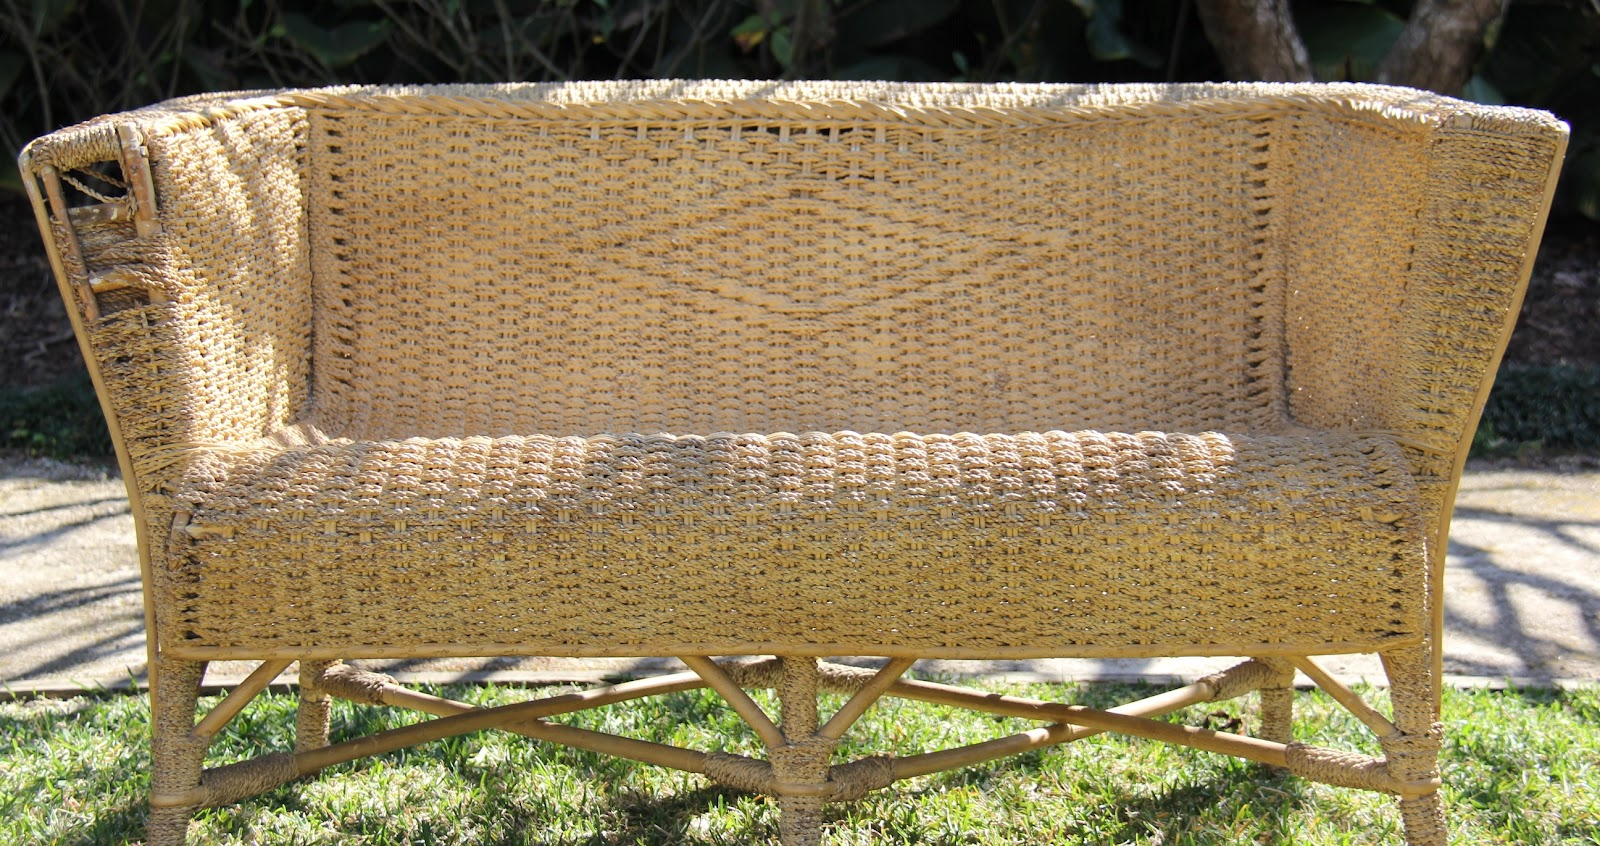 Pier One Wicker Furniture | Pier 1 Ottoman | Pier 1 Wicker Furniture